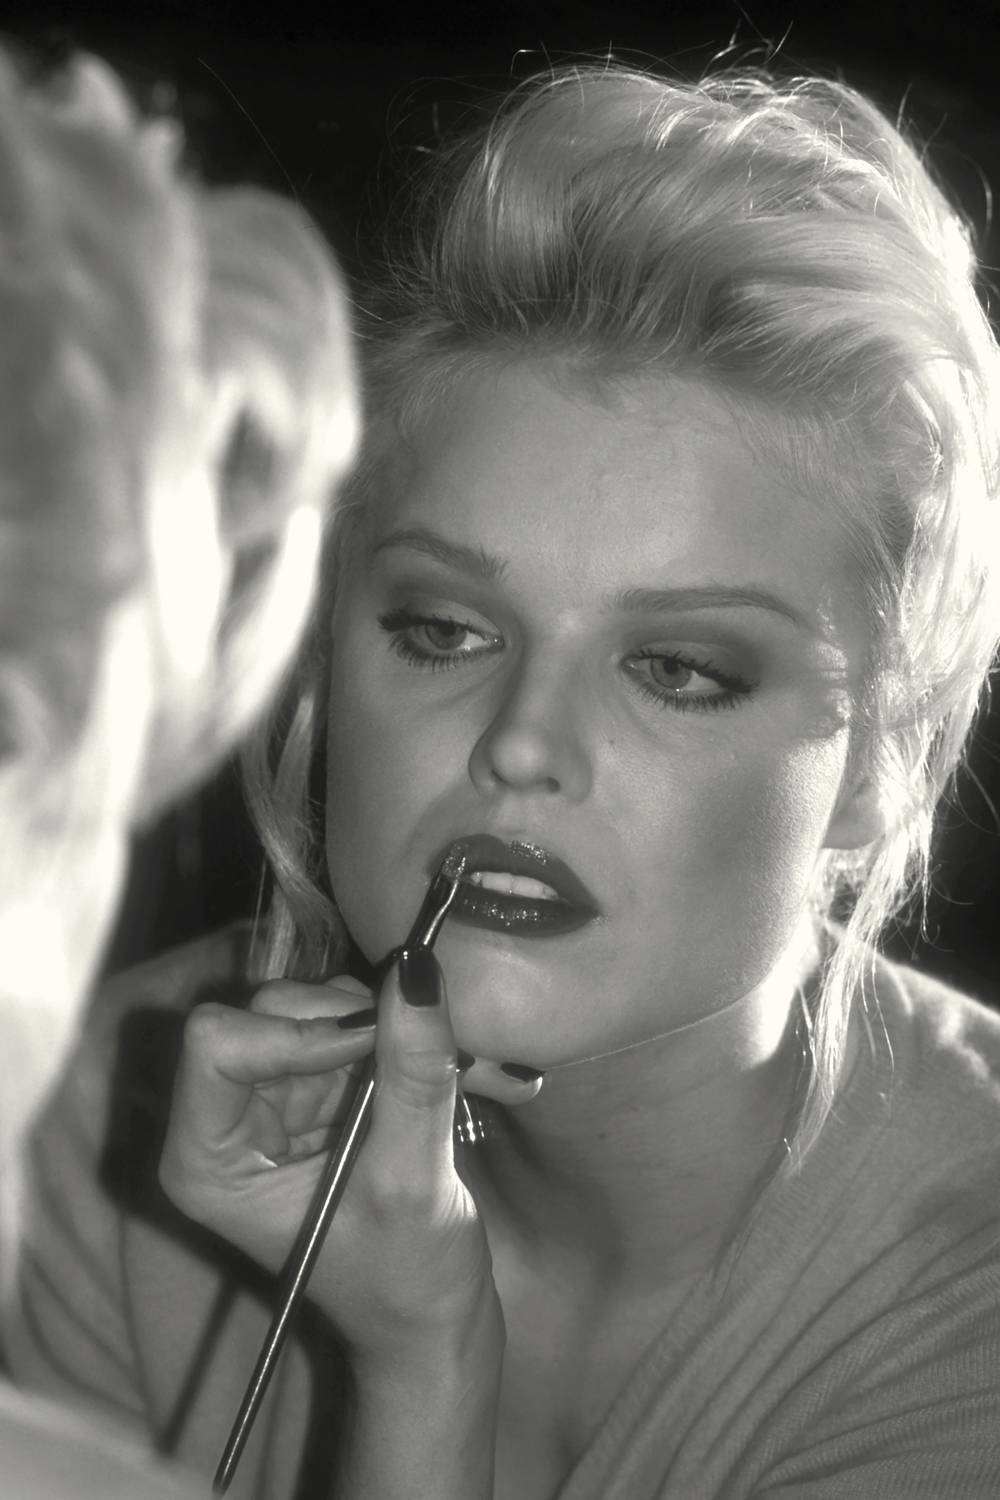 Eva Herzigova - In preparation - Photograph by Guy Marineau